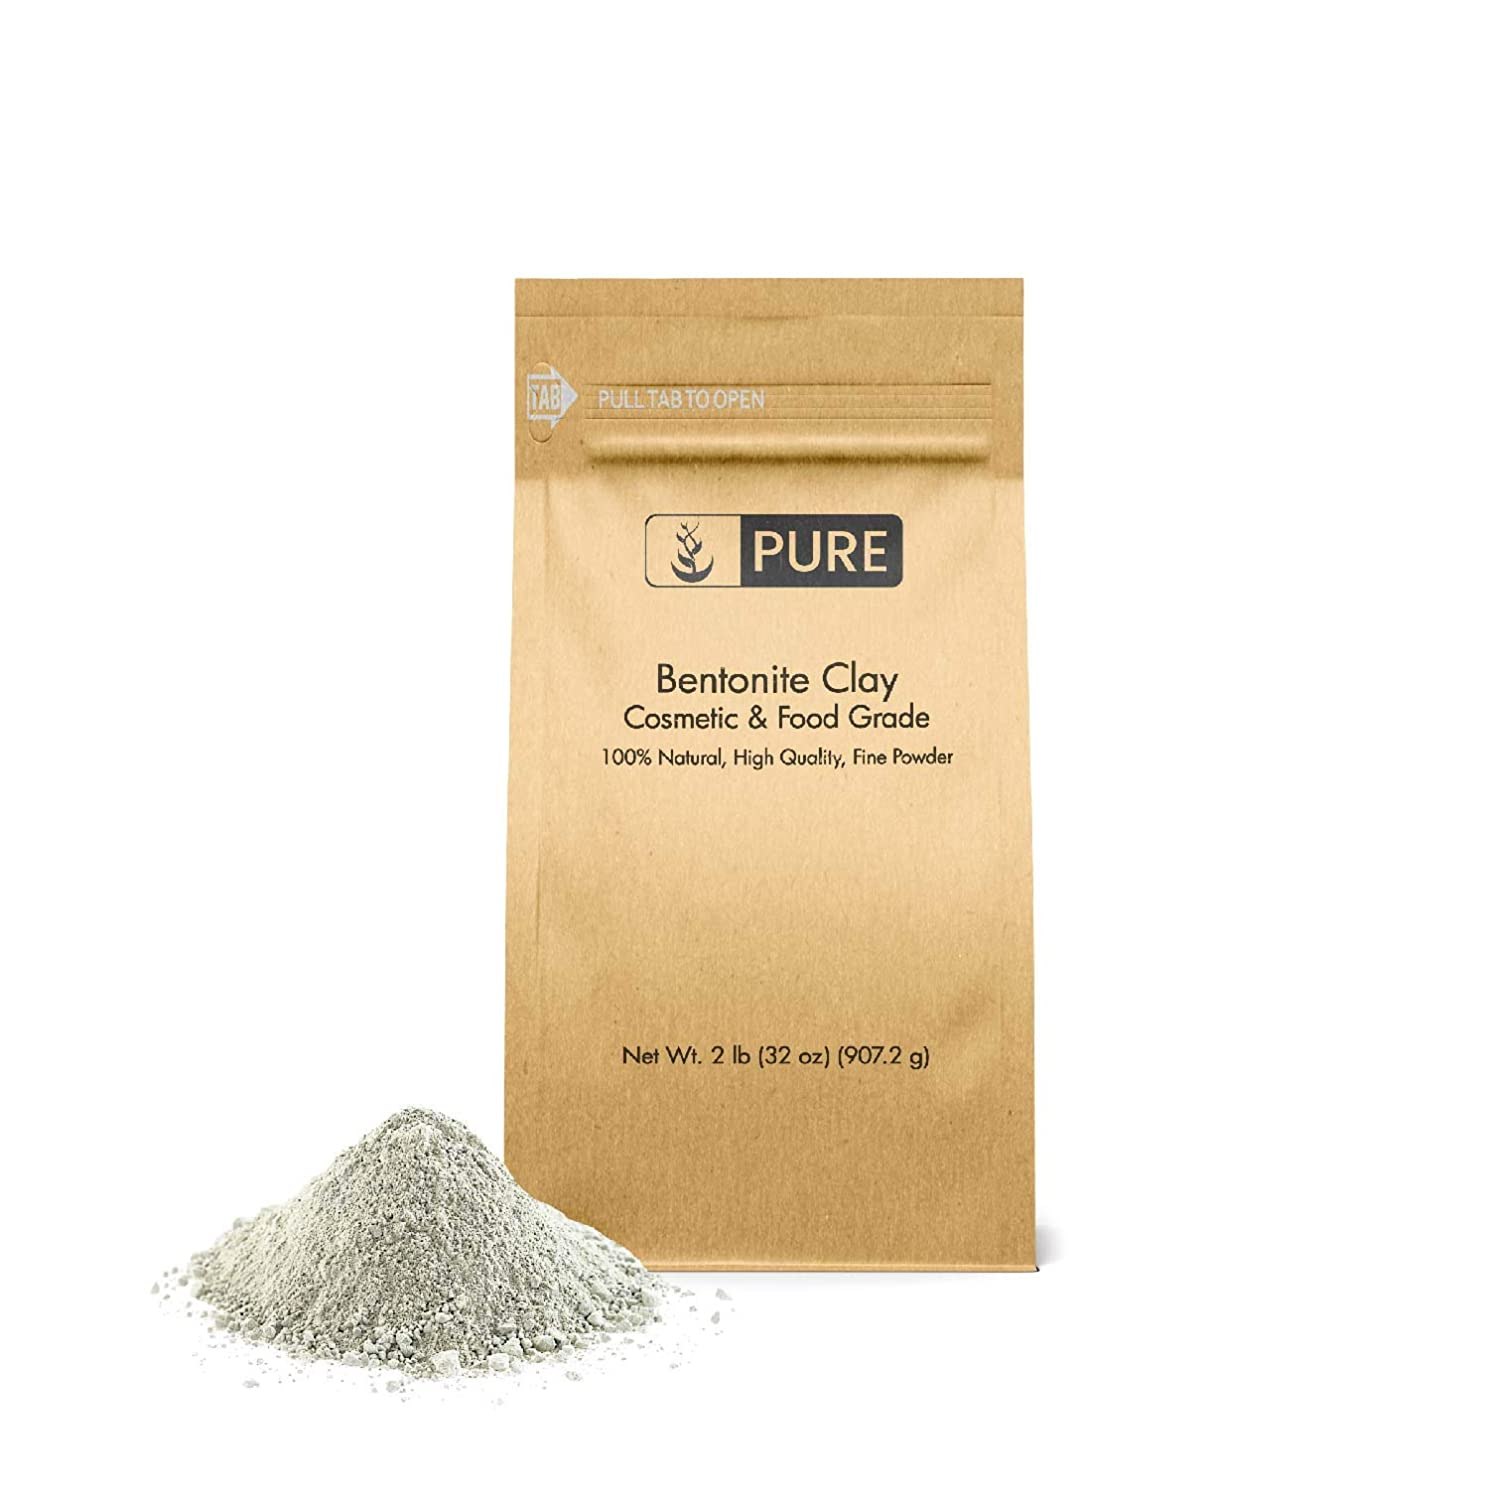 Bentonite Clay (2 lb ) by Pure Organic Ingredients, Eco-Friendly Packaging,  Fine Powder,